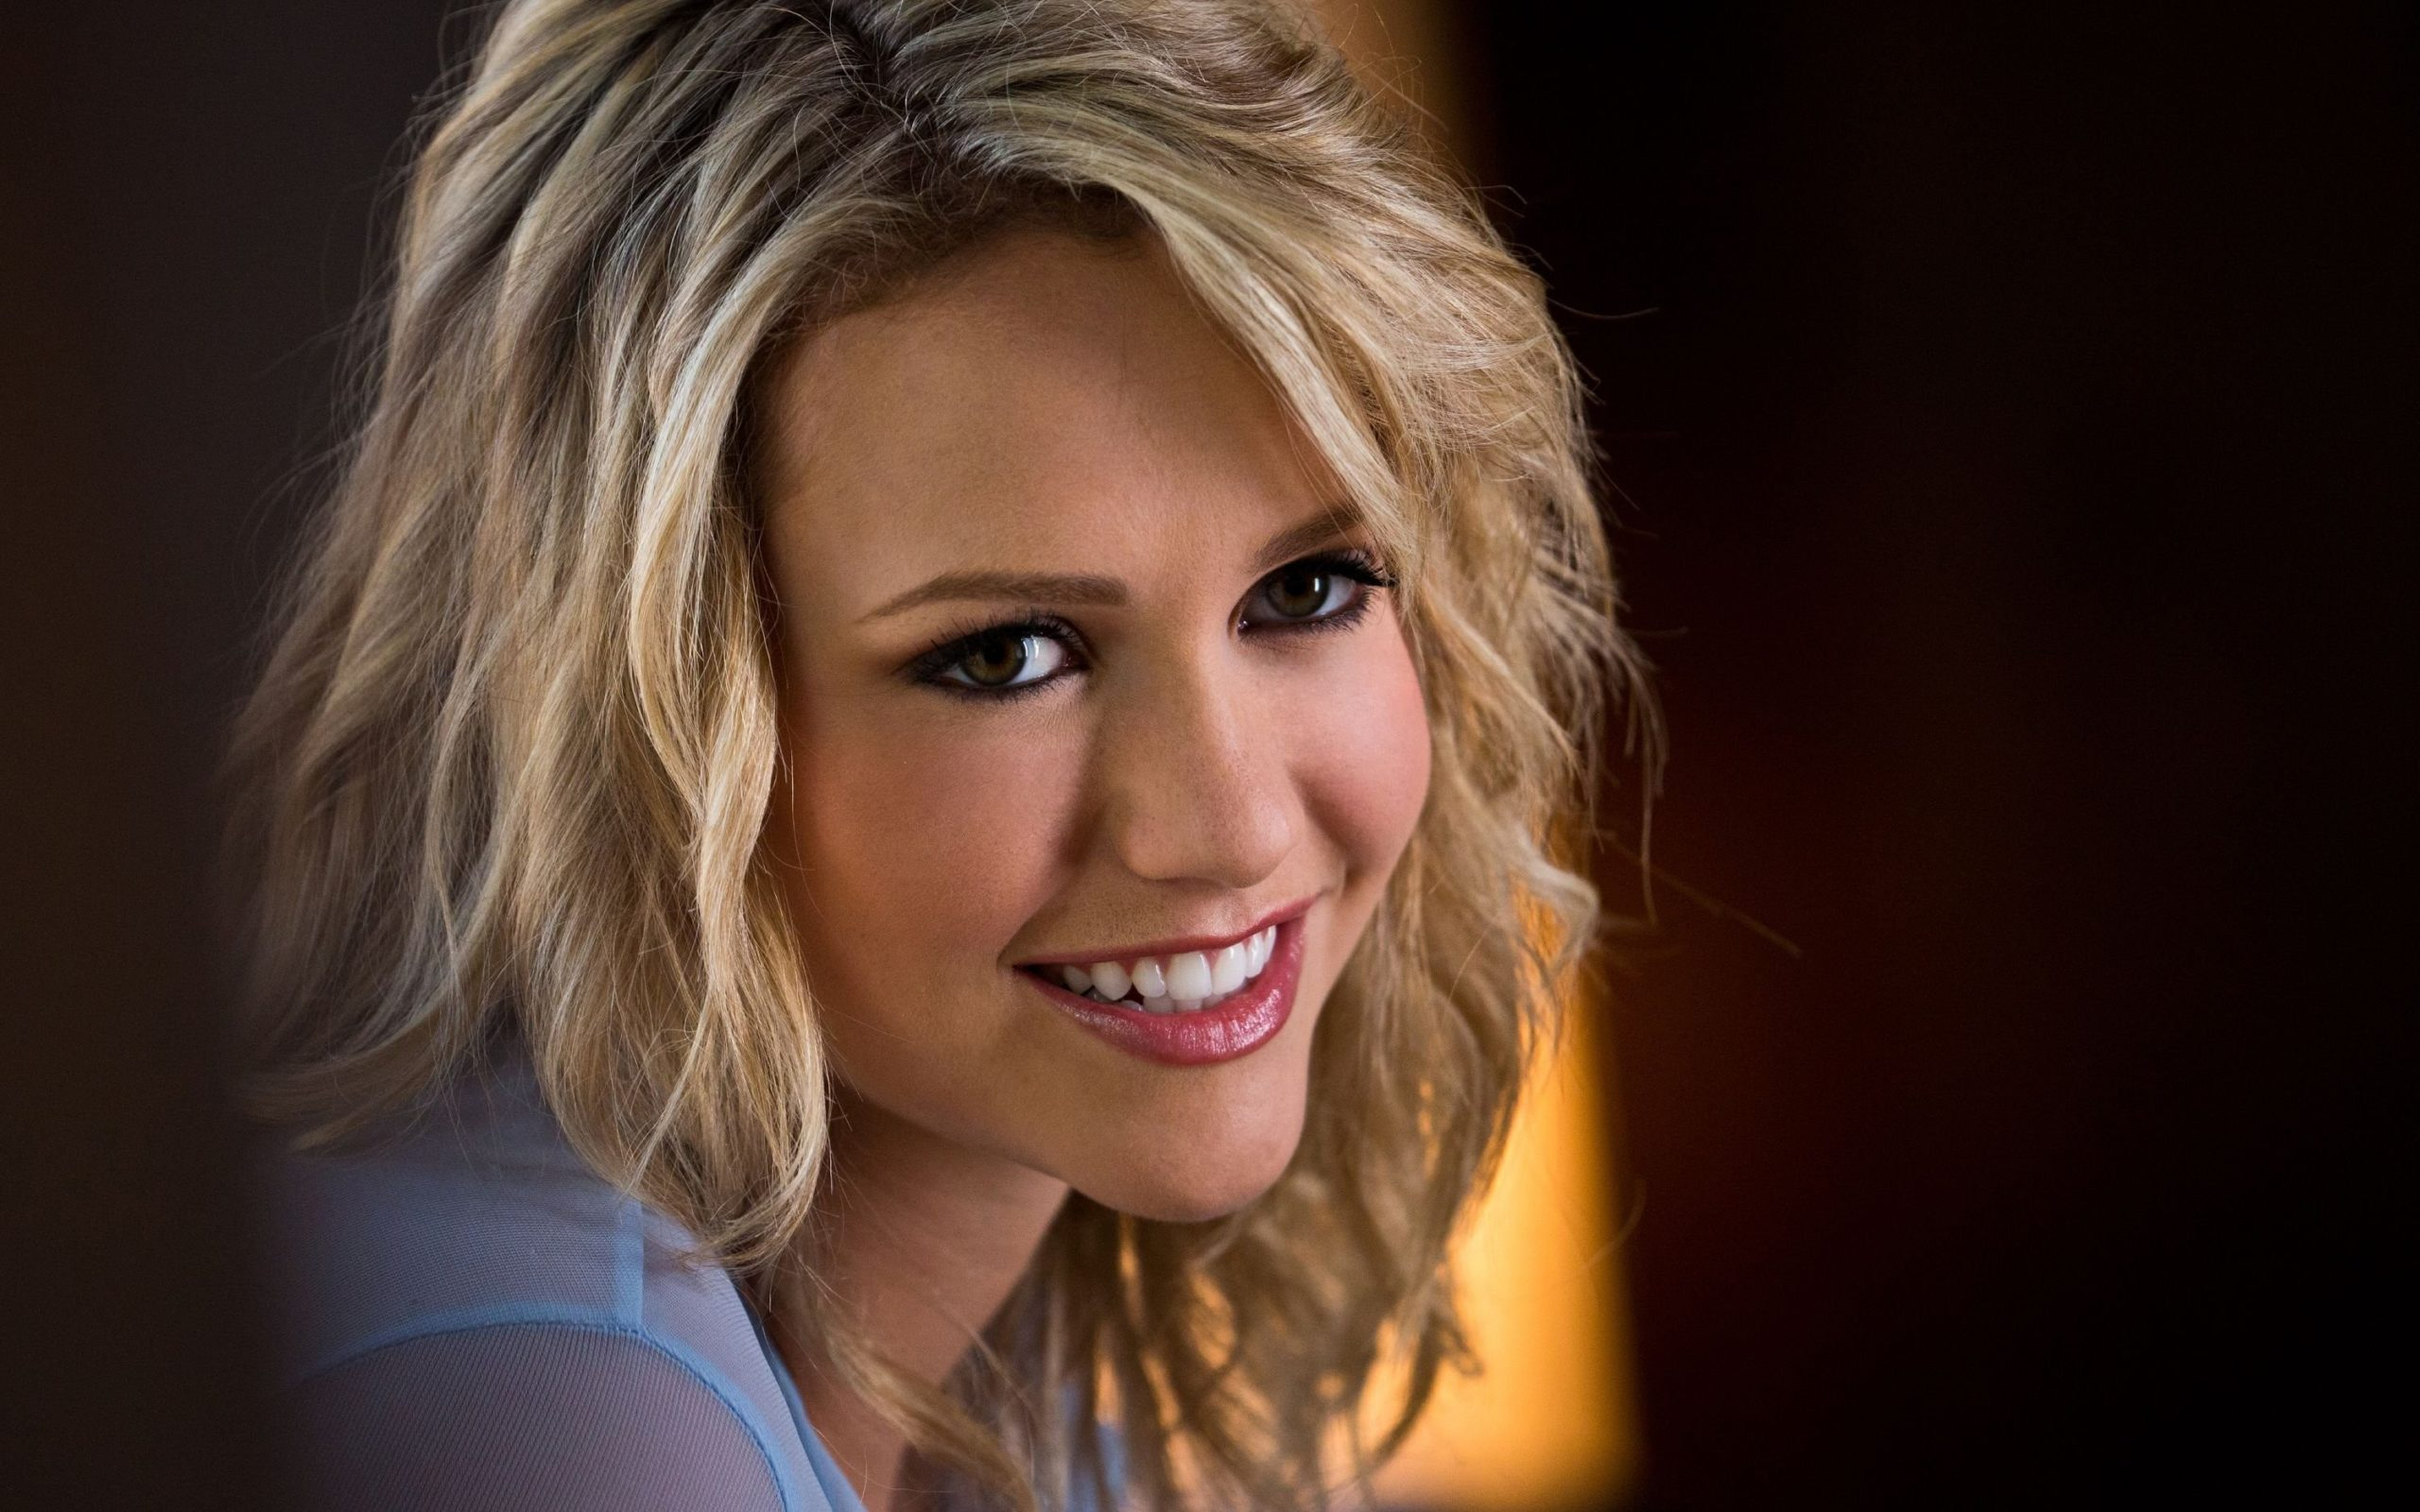 Mia Malkova ( Porn star)- Biography, Husband, Career, Net worth, Lifestyle, Facts and More...